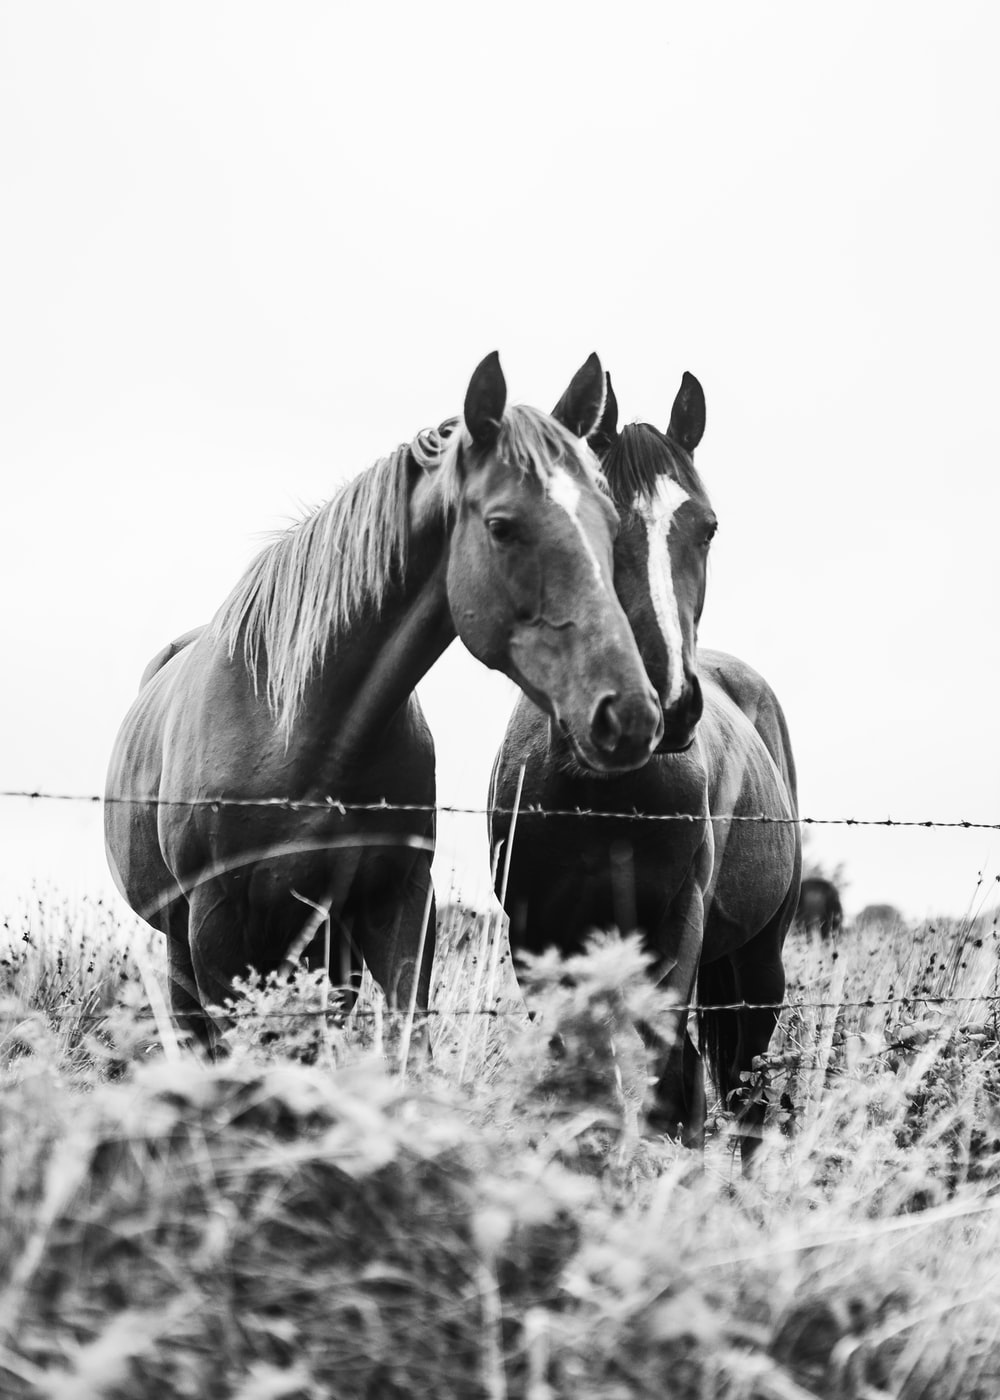 grayscale photo of horses